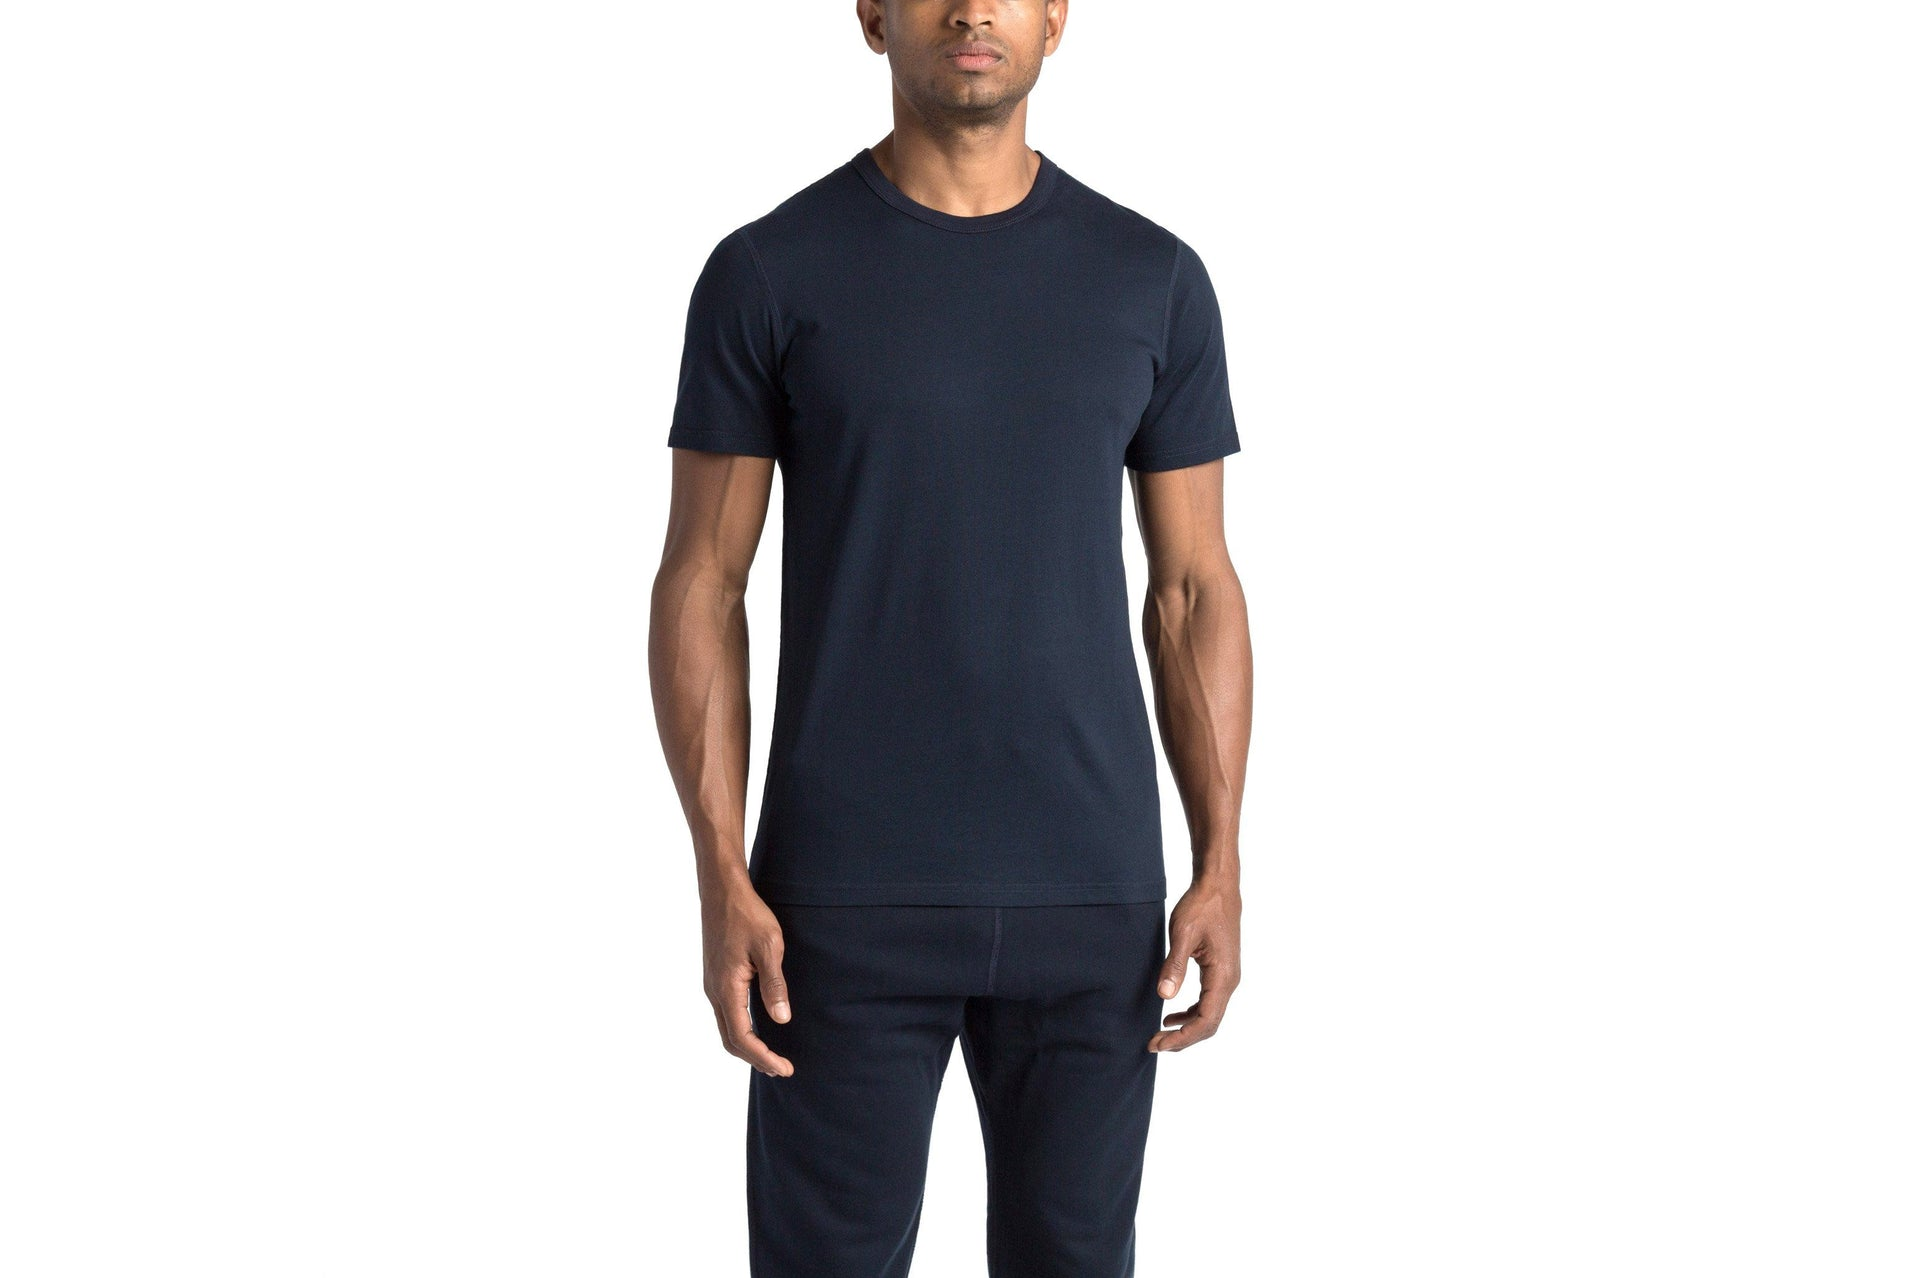 KNIT COTTON S/S CREWNECK TEE MENS SOFTGOODS REIGNING CHAMP